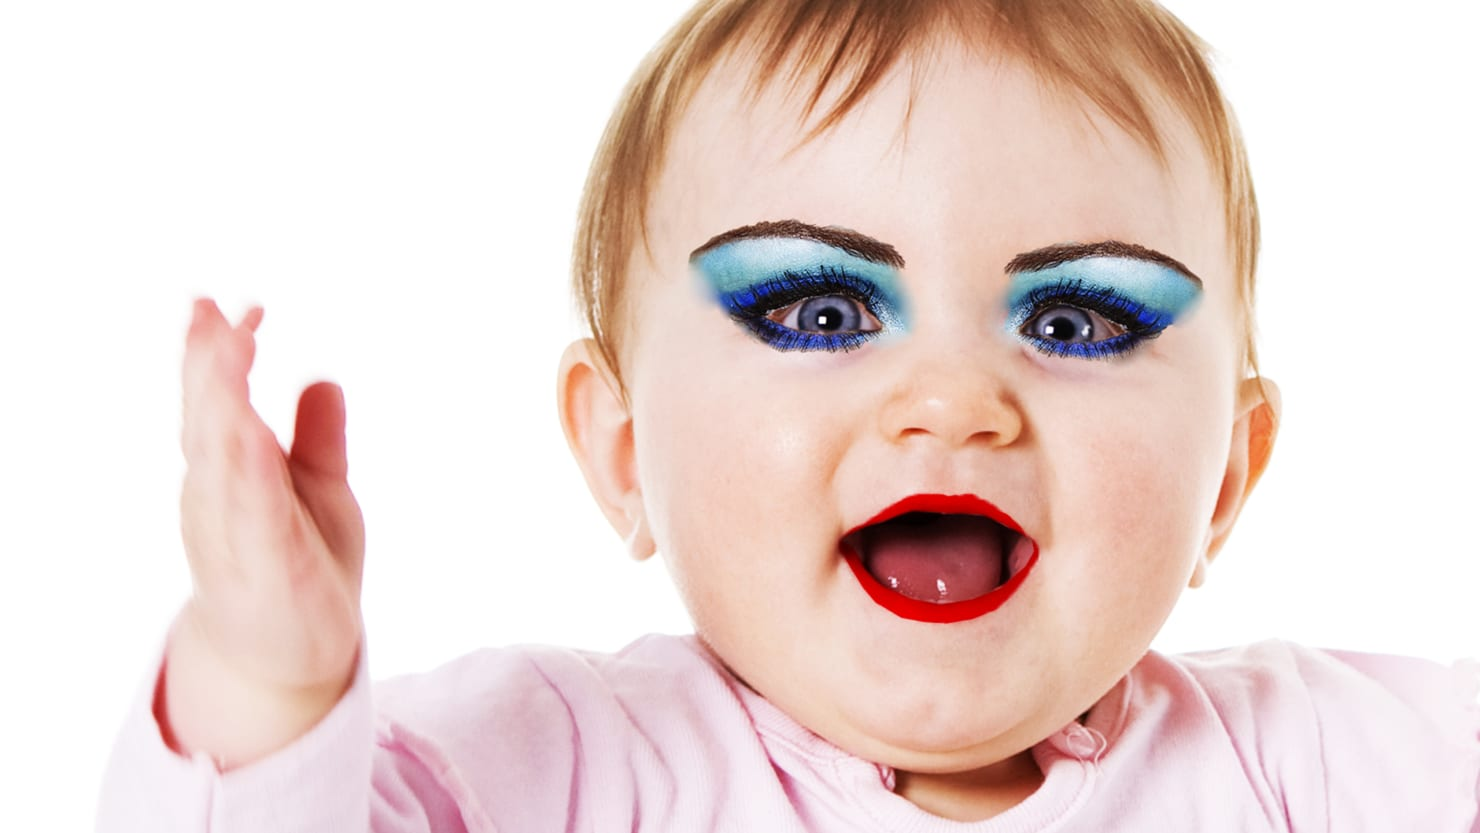 the rich and horrifying world of toddler makeup tutorials